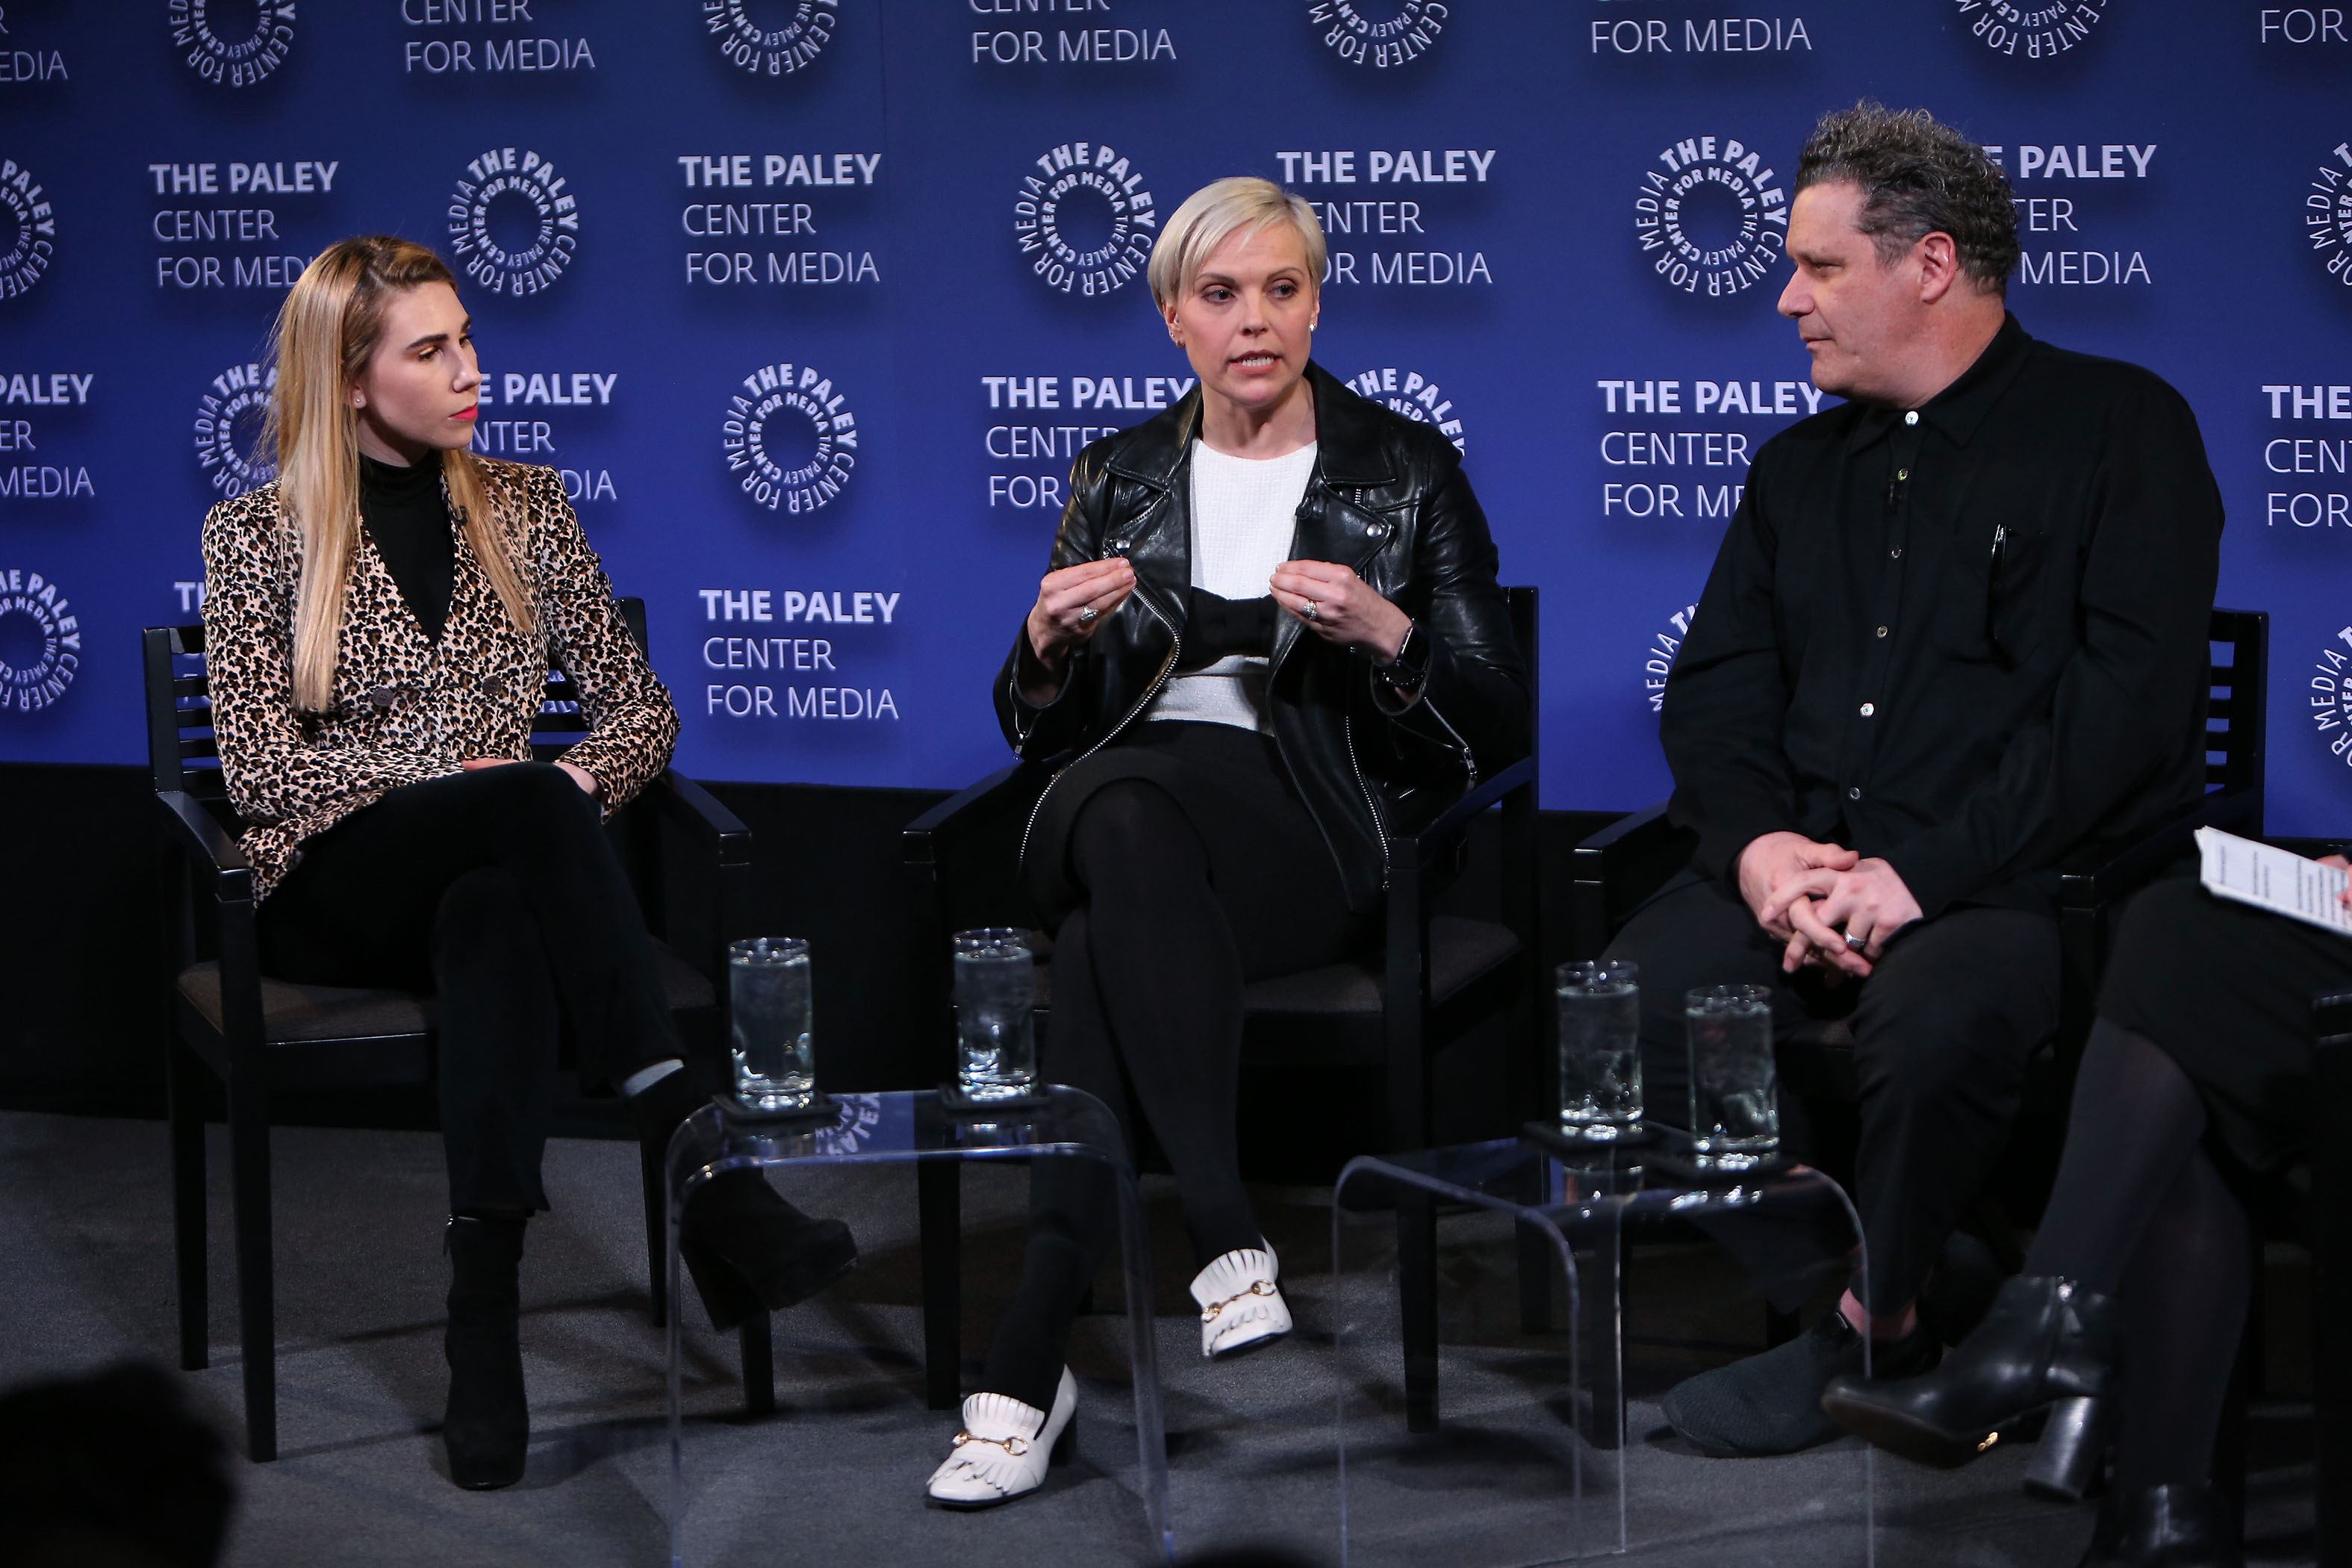 - New York, NY - 4/5/18 - PaleyLive NY: Ready-to-Watch: TV and Fashion-Pictured: Zosia Mamet, Jenn Rogien, Isaac Mizrahi-Photo by: Patrick Lewis/Starpix-Location: The Paley Center for Media